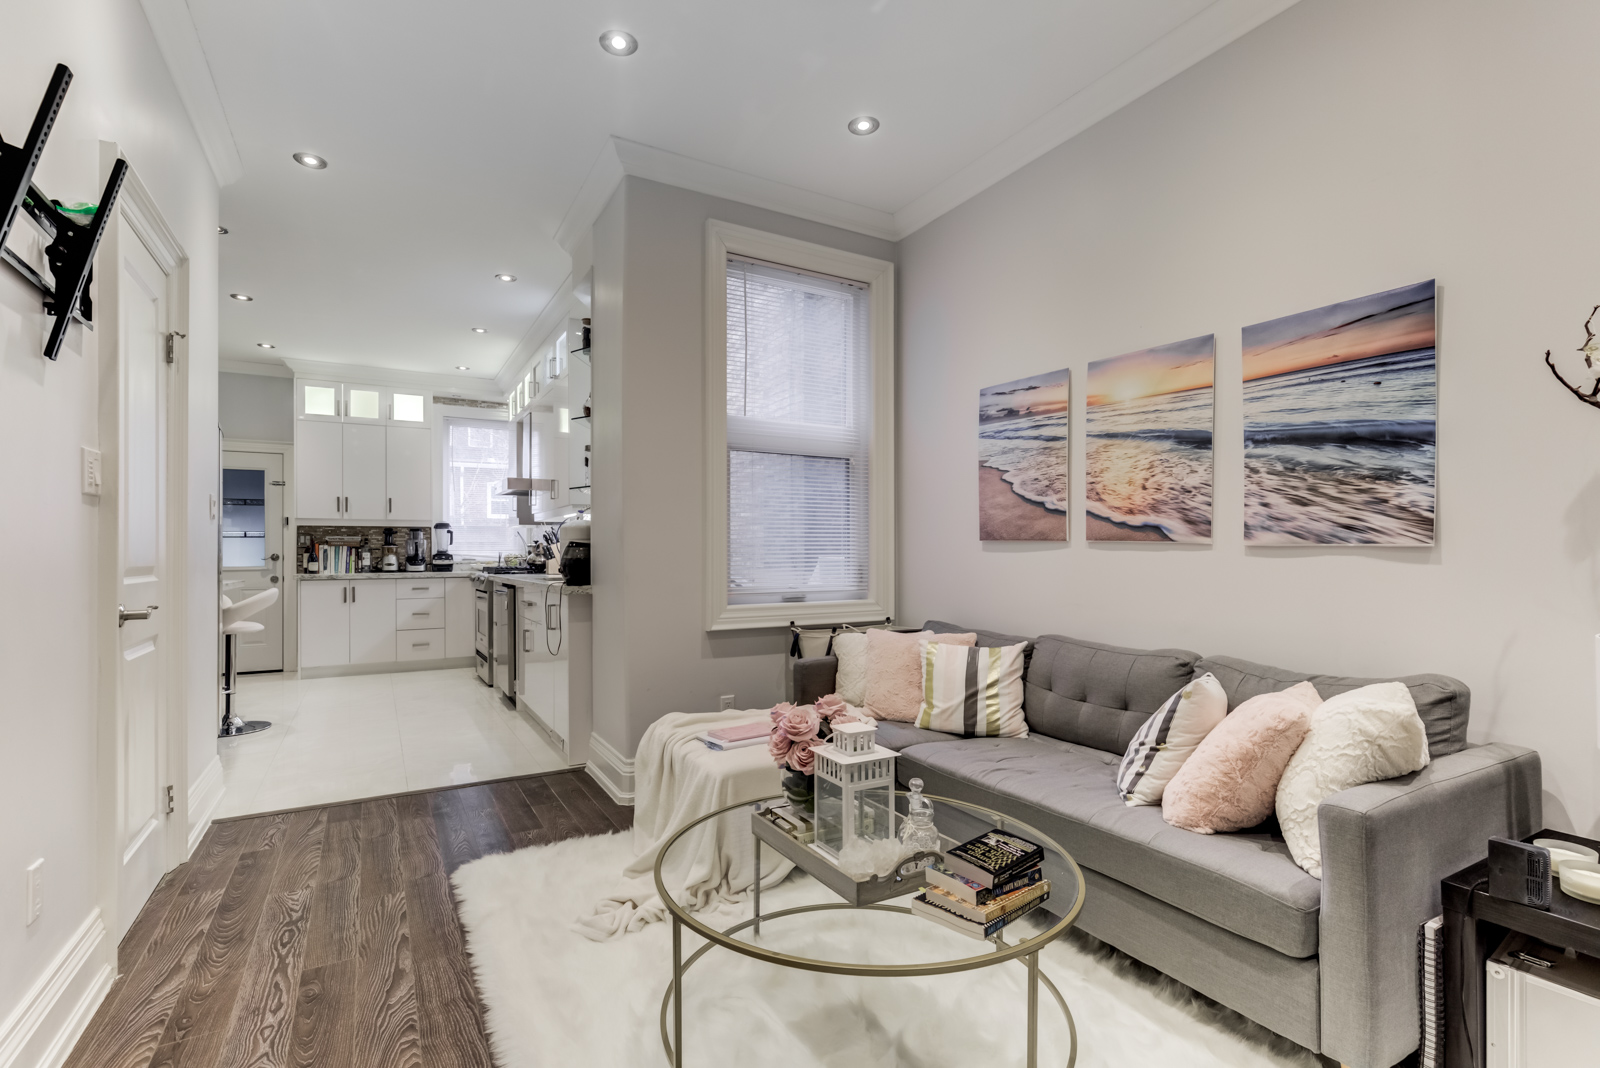 Renovated living room with gray sofa, thick white rug and gray walls hung with paintings.